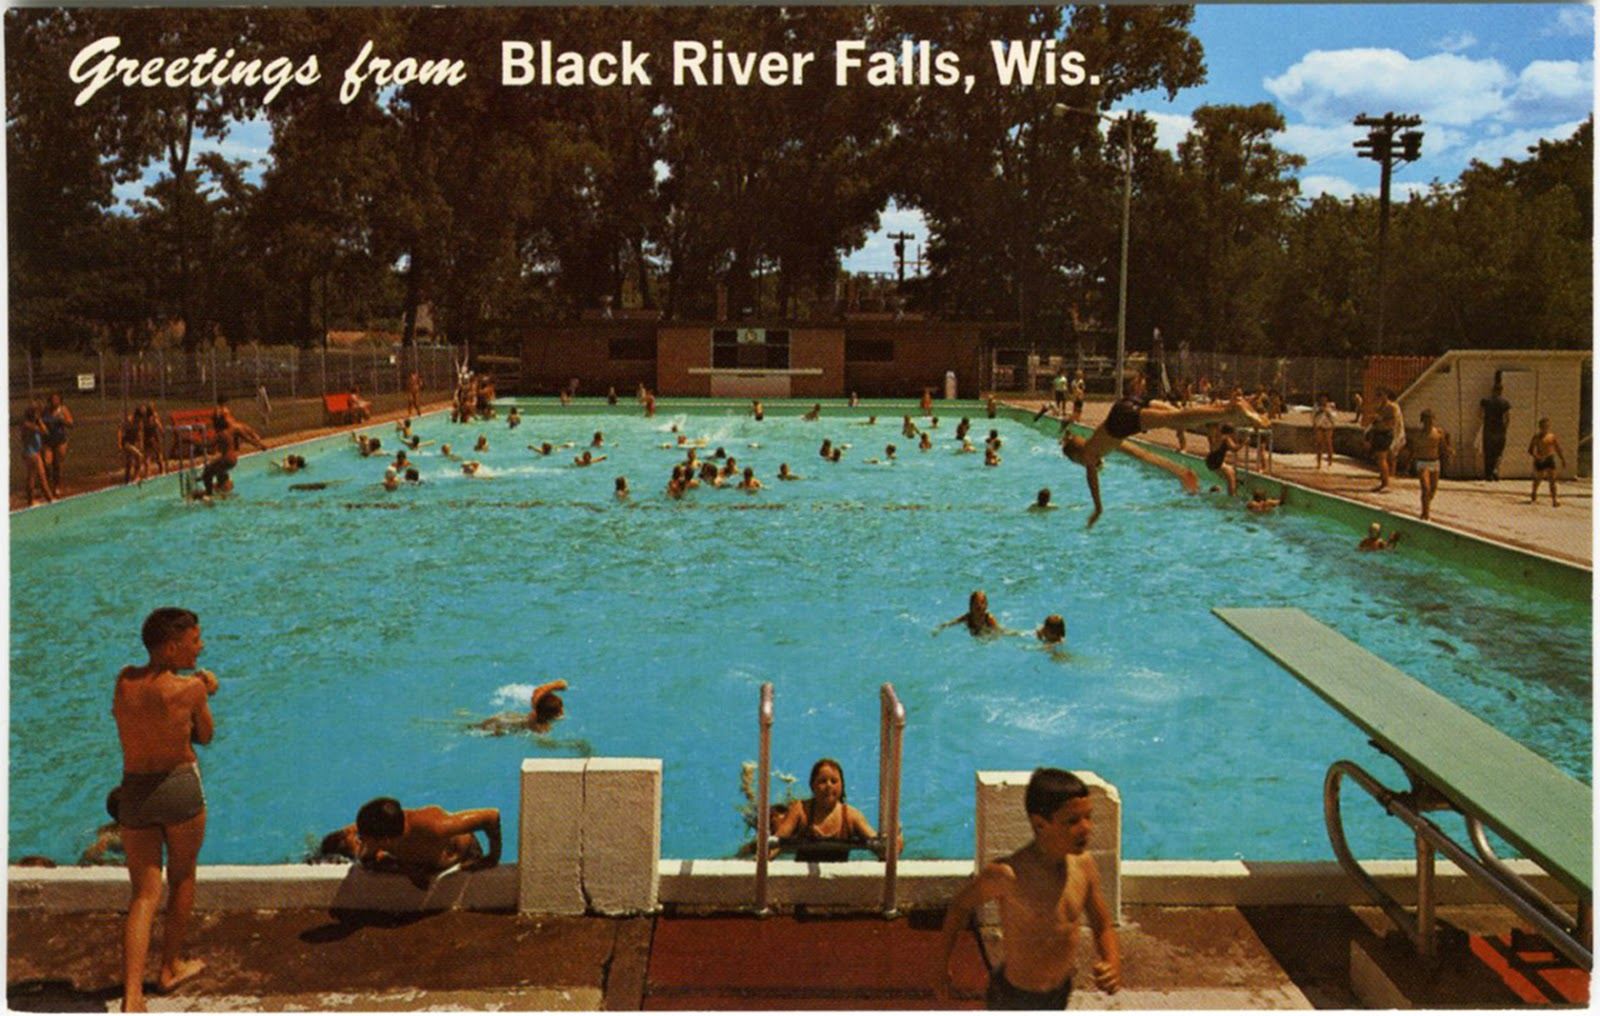 The Wisconsin Project Found Greetings From Black River Falls